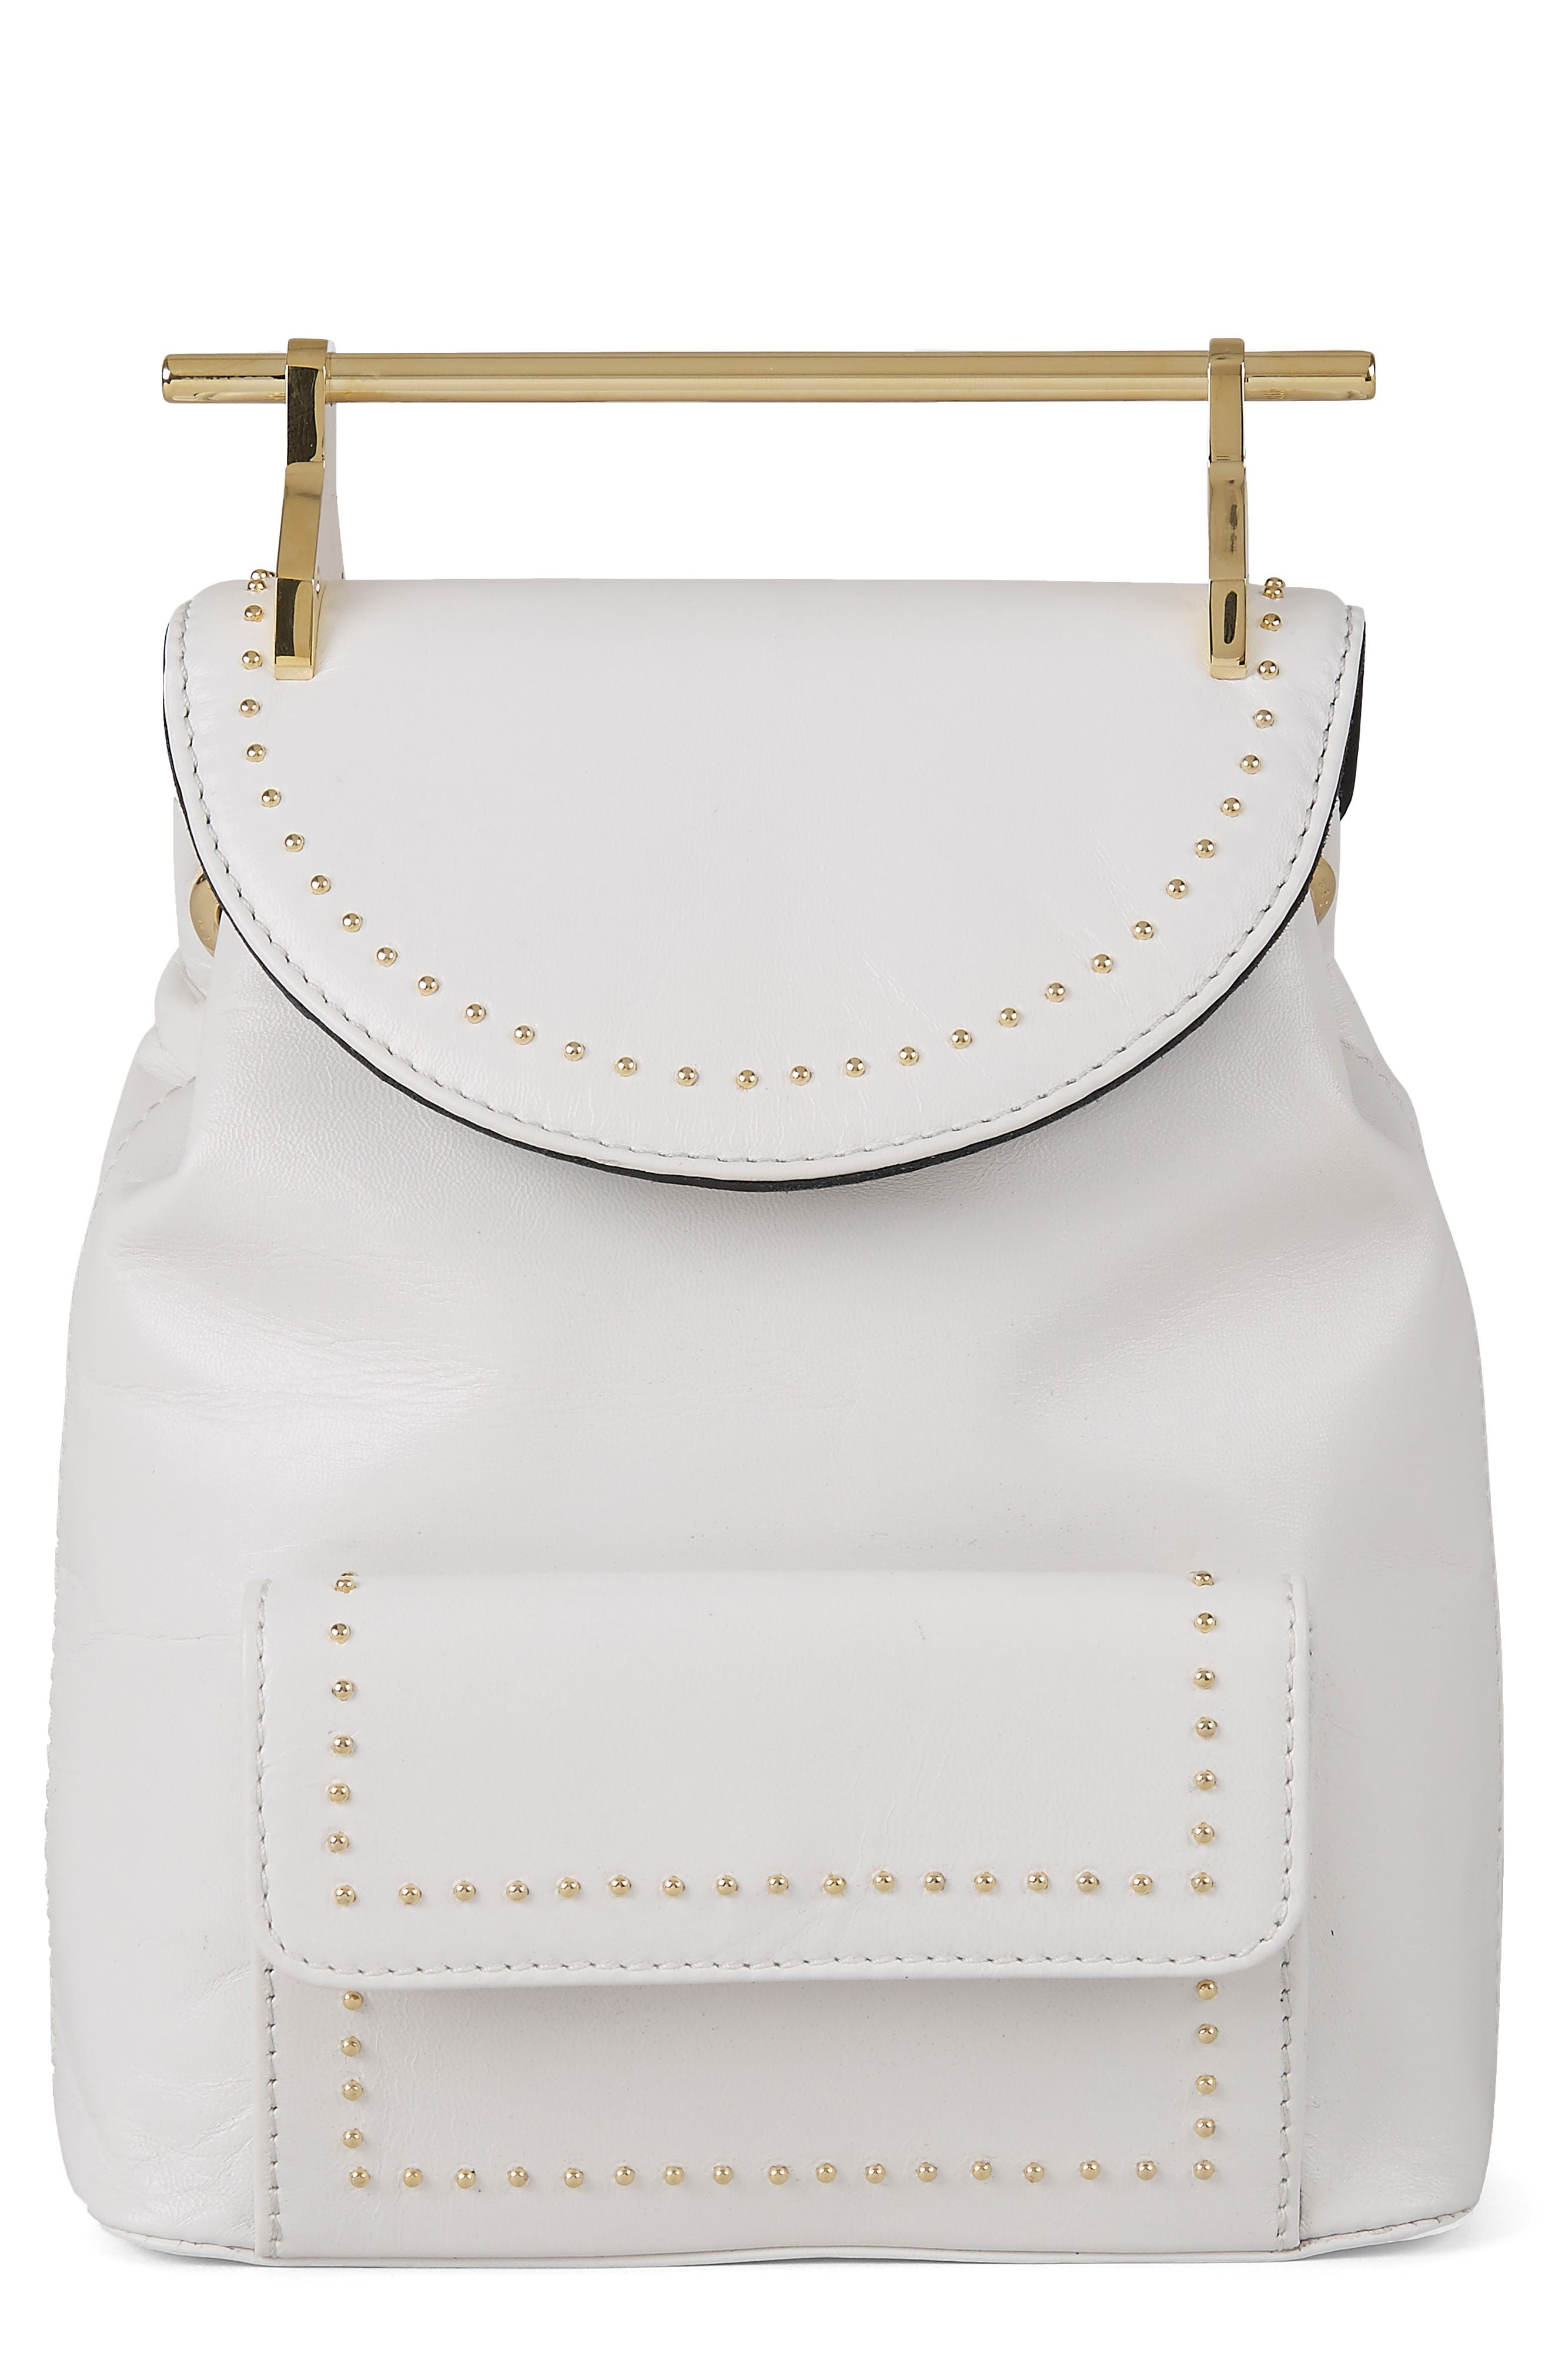 Mini Calfskin Leather Backpack,                             Main thumbnail 1, color,                             Studded White/ Gold